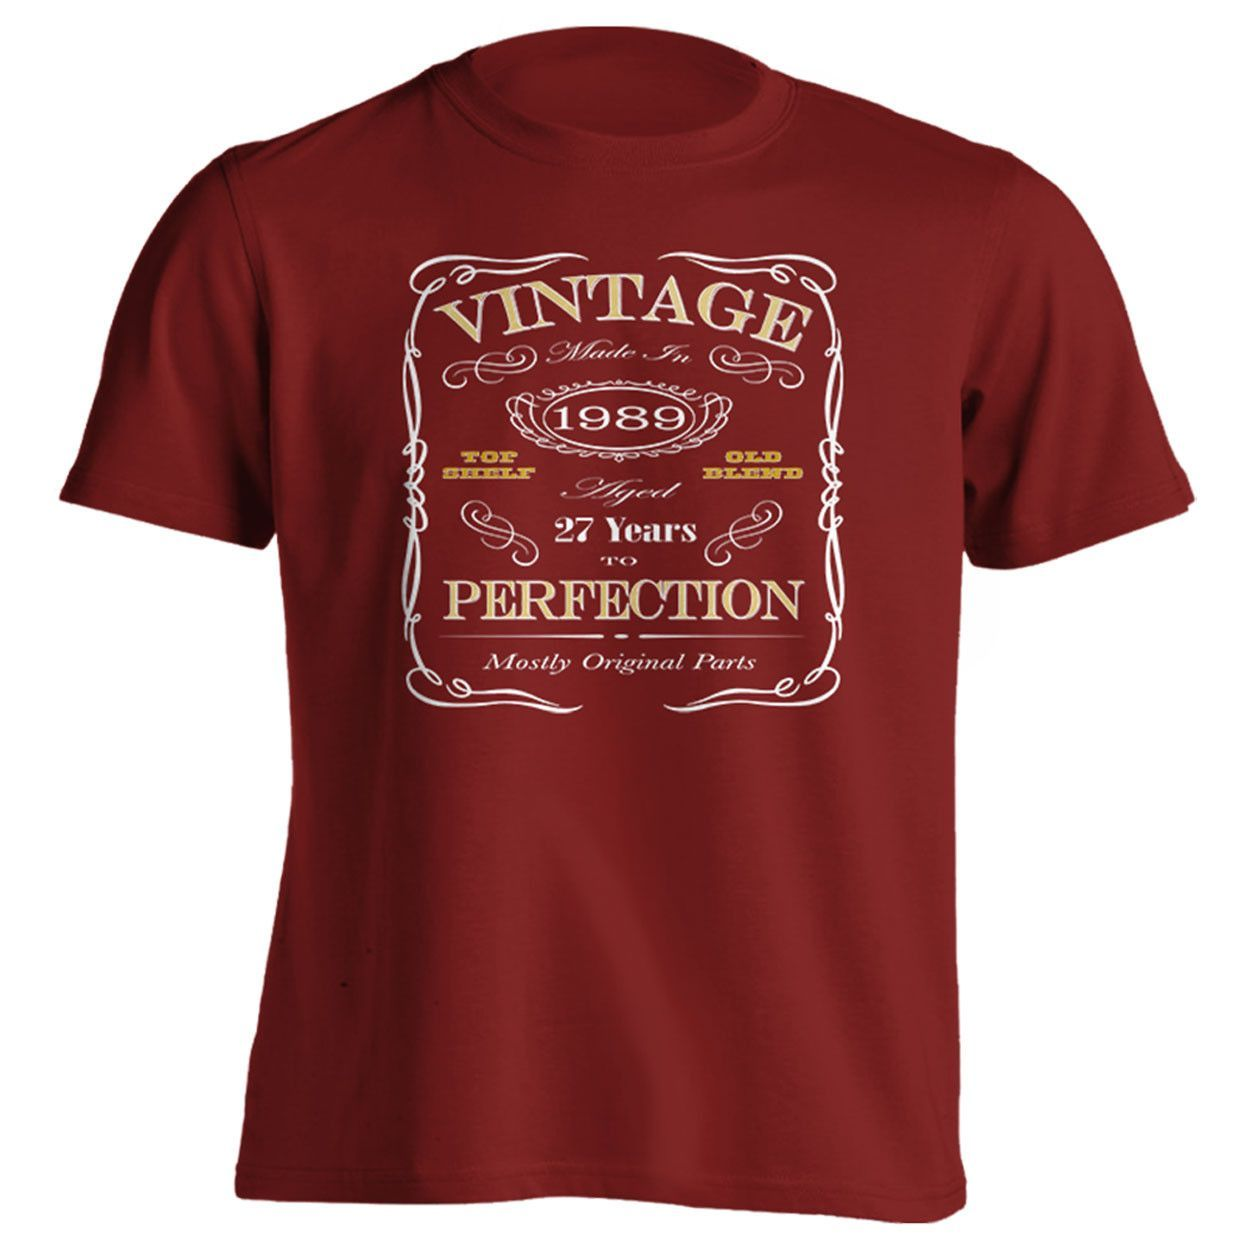 27th Birthday Gift T-Shirt - Born In 1989 - Vintage Aged 27 Years To Perfection Short Sleeve Mens T Shirt